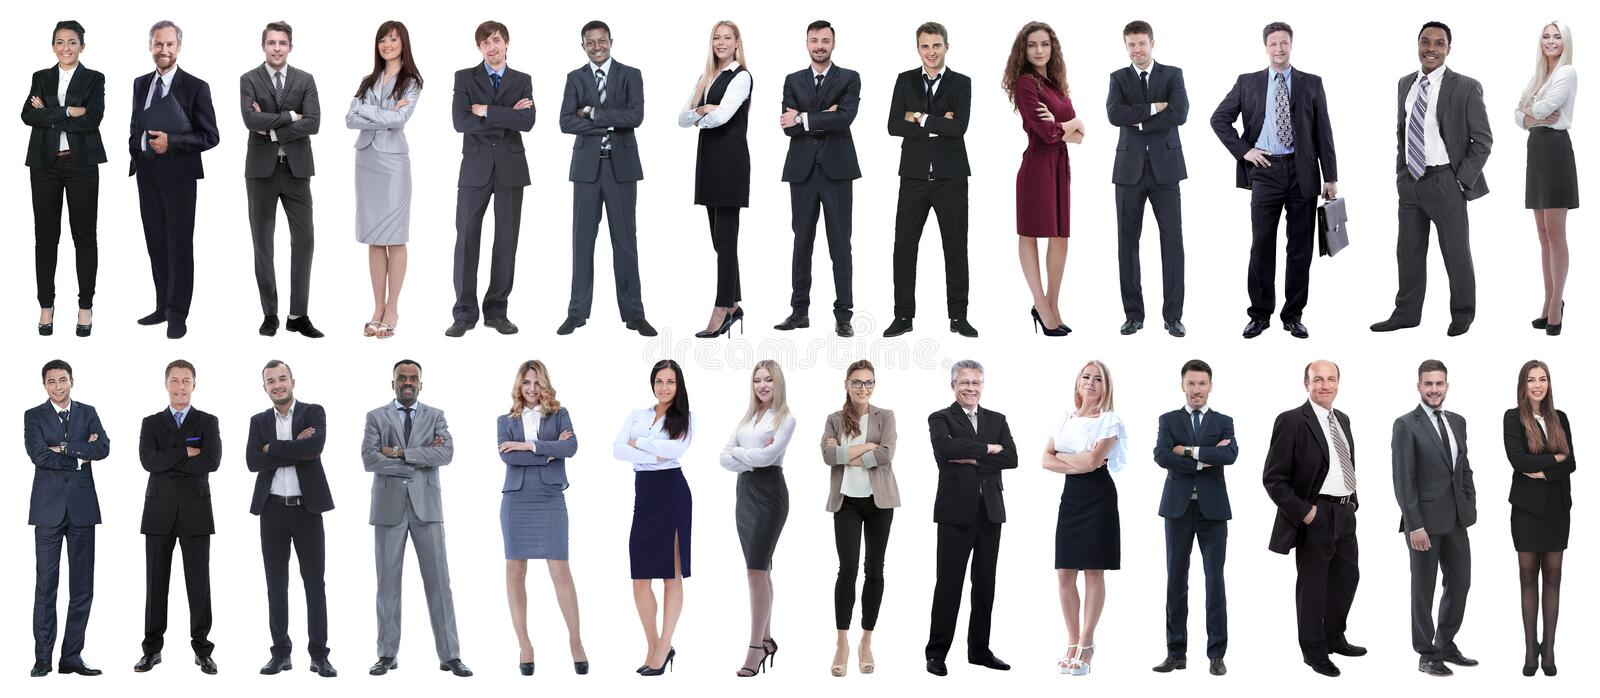 Successful business people isolated on white background. Photo collage royalty free stock photos